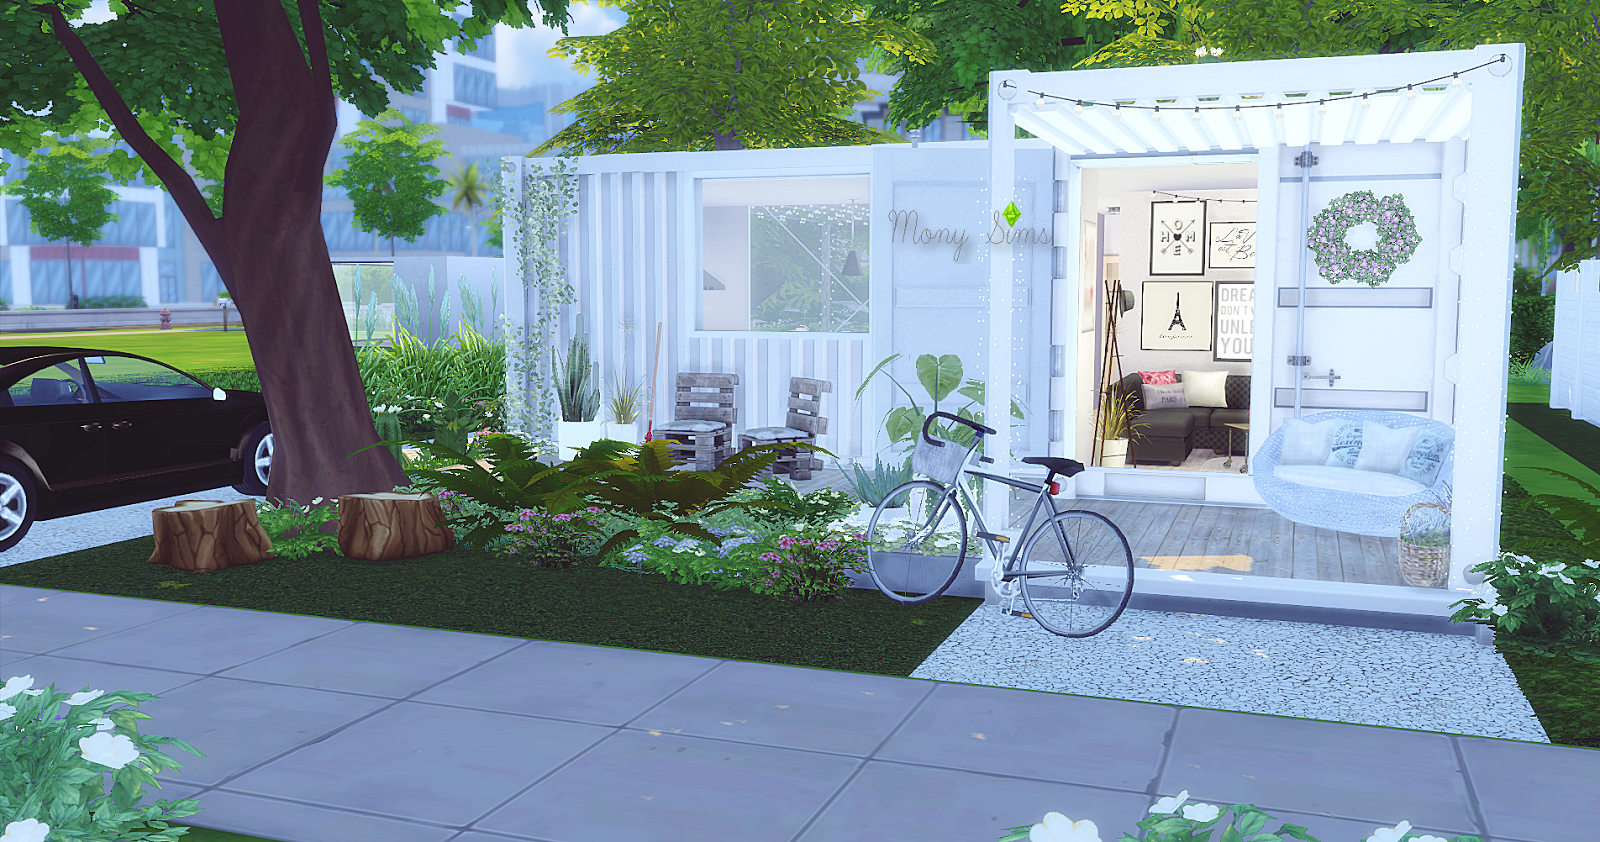 My Sims 4 Blog The Cute Container House By Monysims